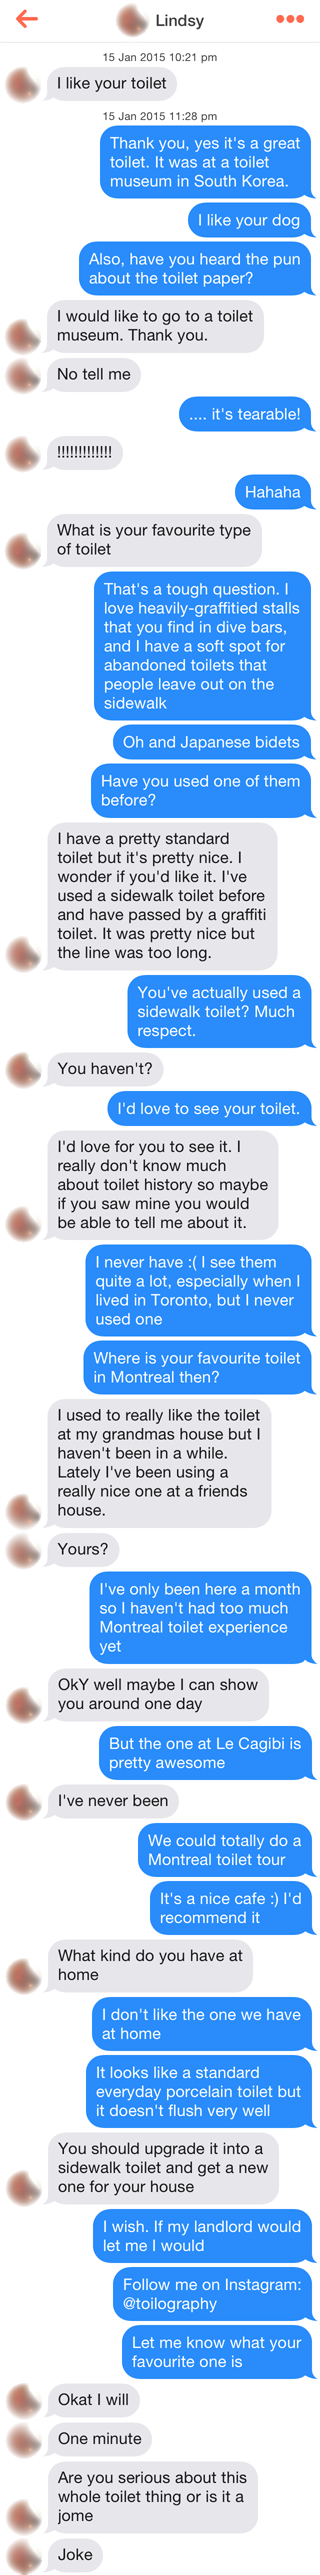 Tinder - Toilet Chat 4